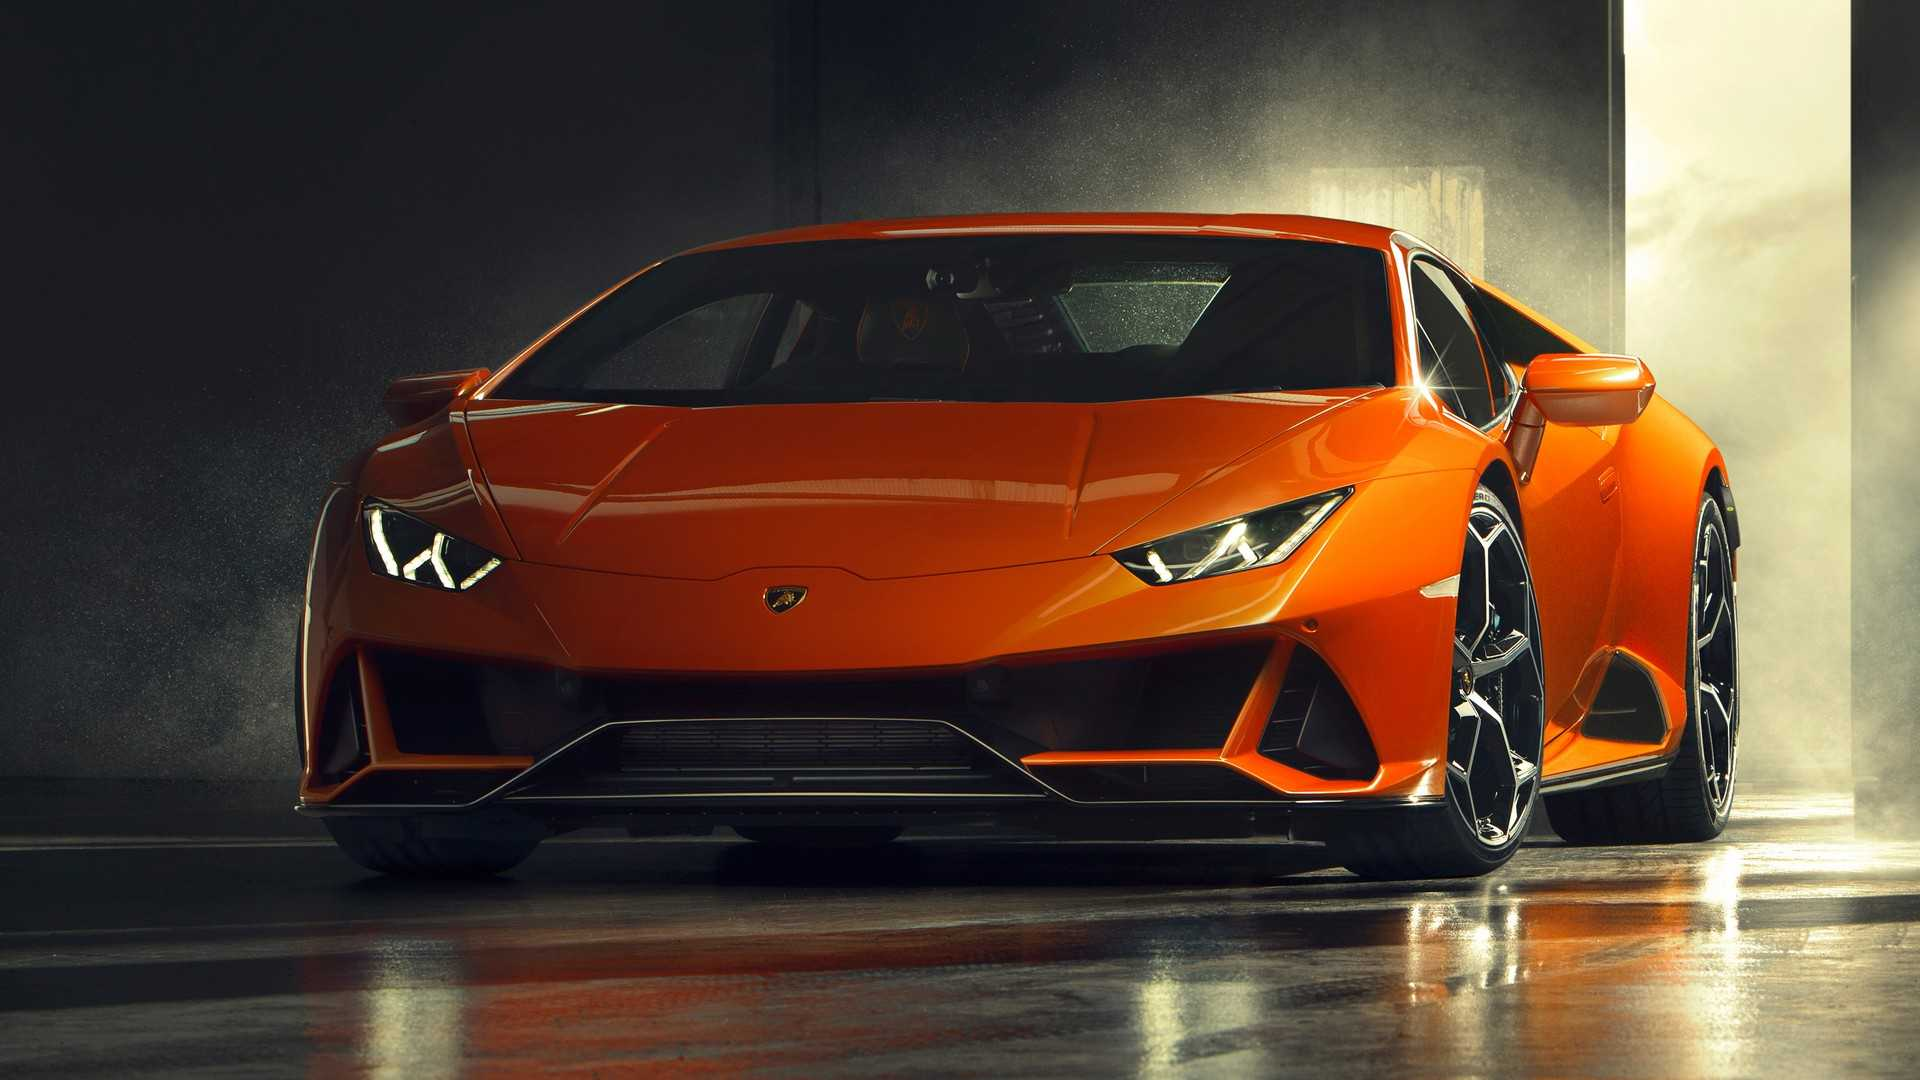 79 New 2020 Lamborghini Huracan First Drive with 2020 Lamborghini Huracan